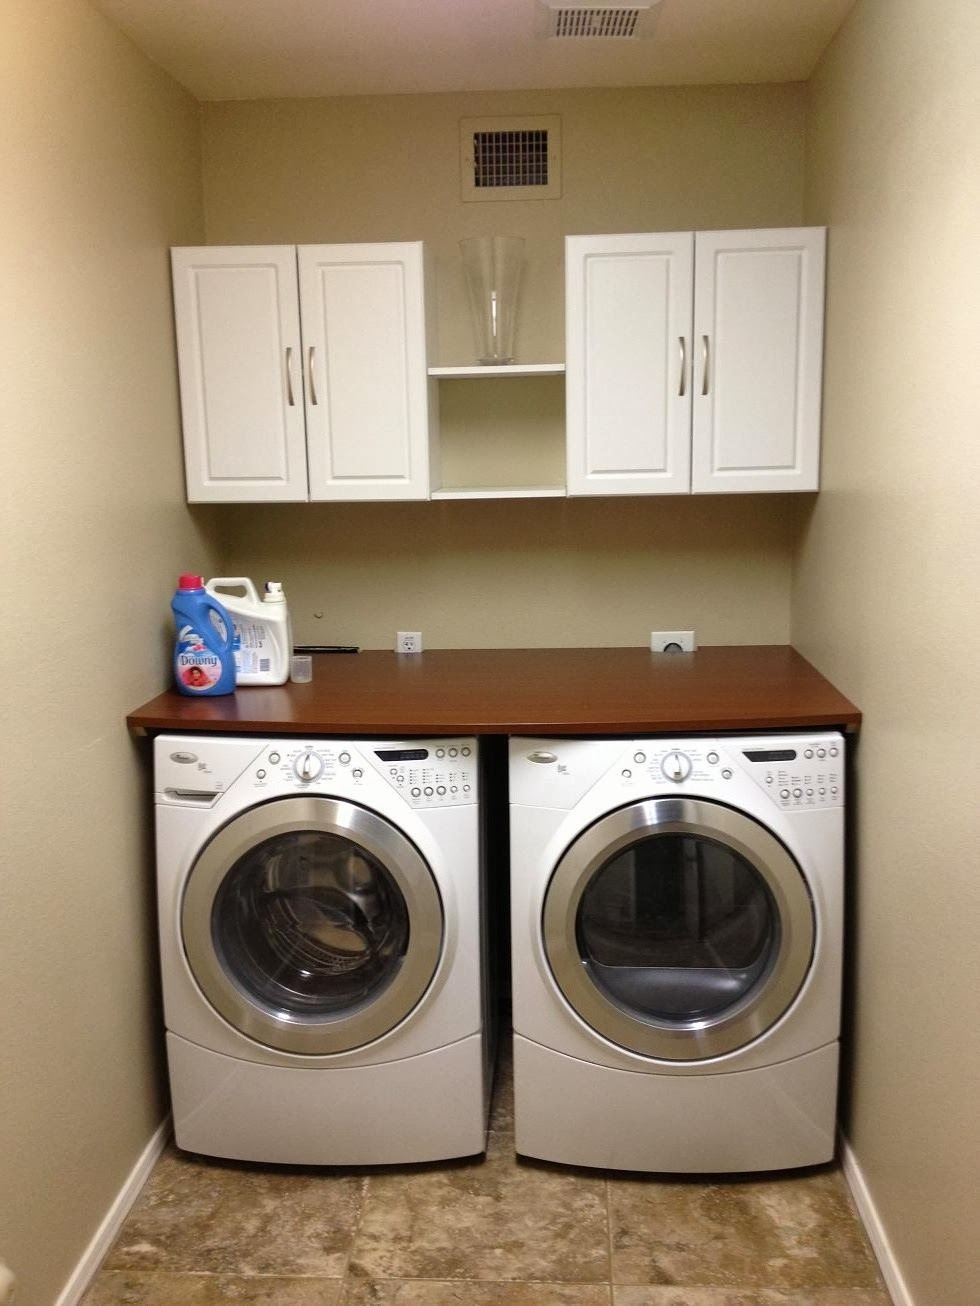 Hesselblogger laundry room for Laundry room countertop over washer and dryer